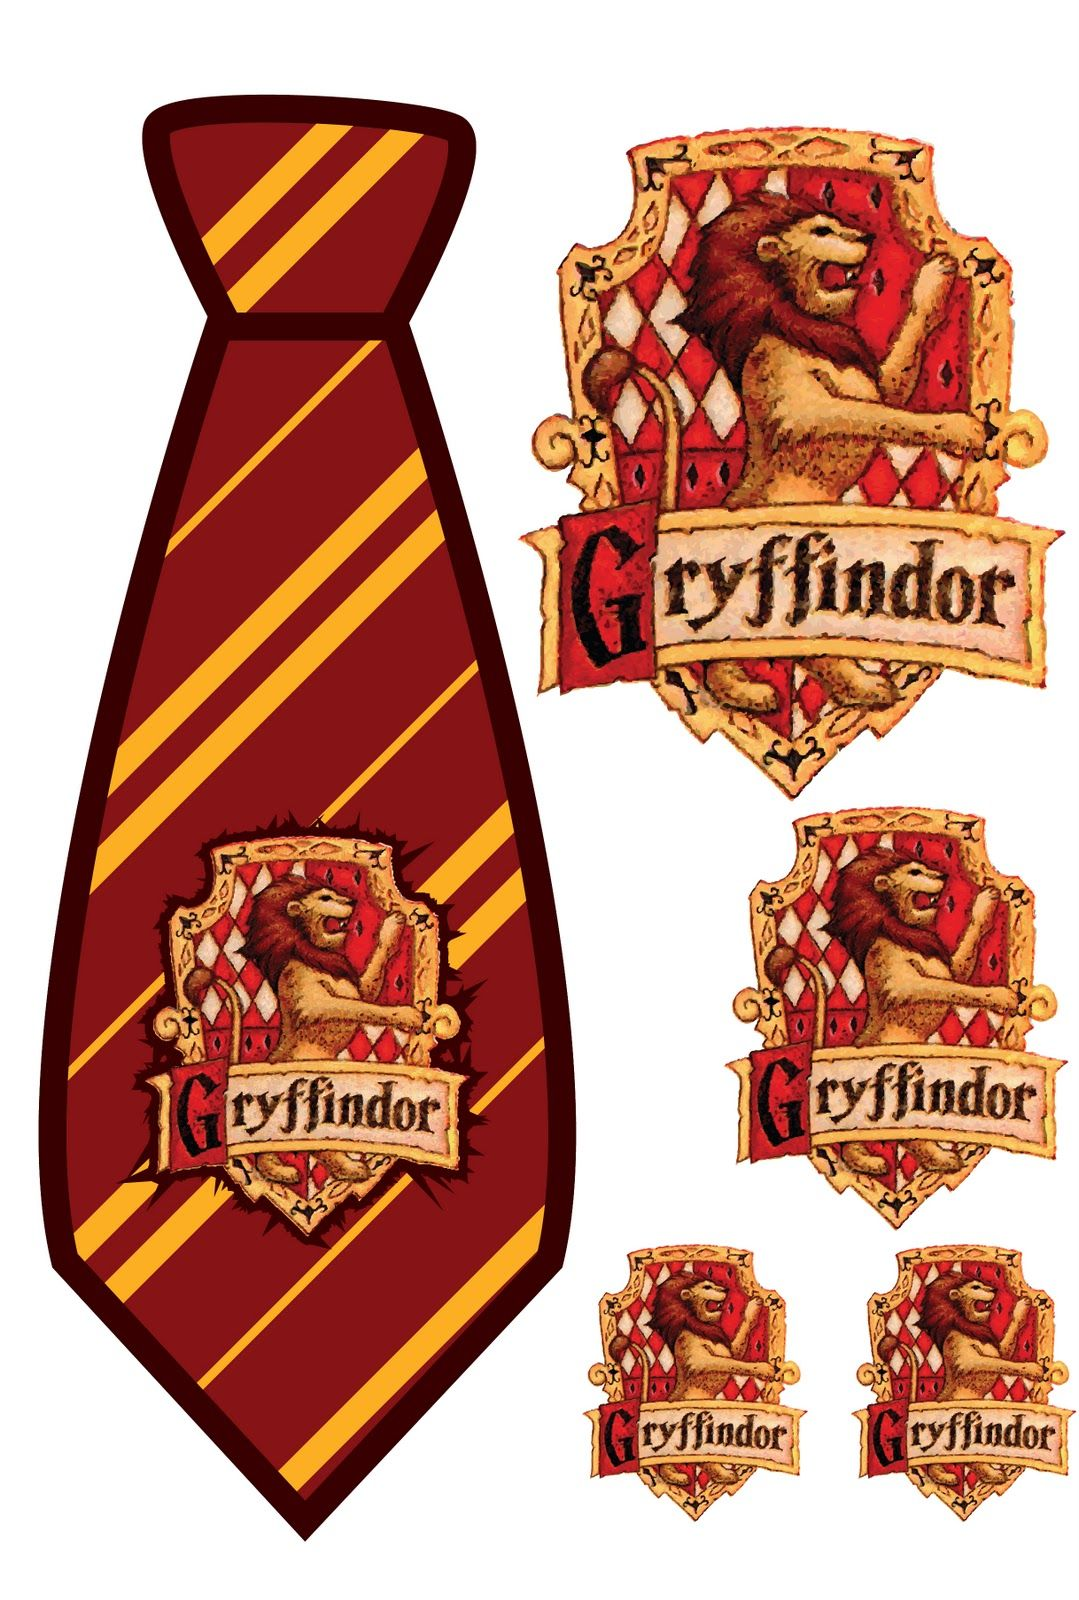 Harri Potter 5 Houses Gryffindor Slytherin Ravenclaw Hufflepuff Logo Model Eagl Lion Snake Badger Printed Flag Halloween Cosplay Latest Technology Action & Toy Figures